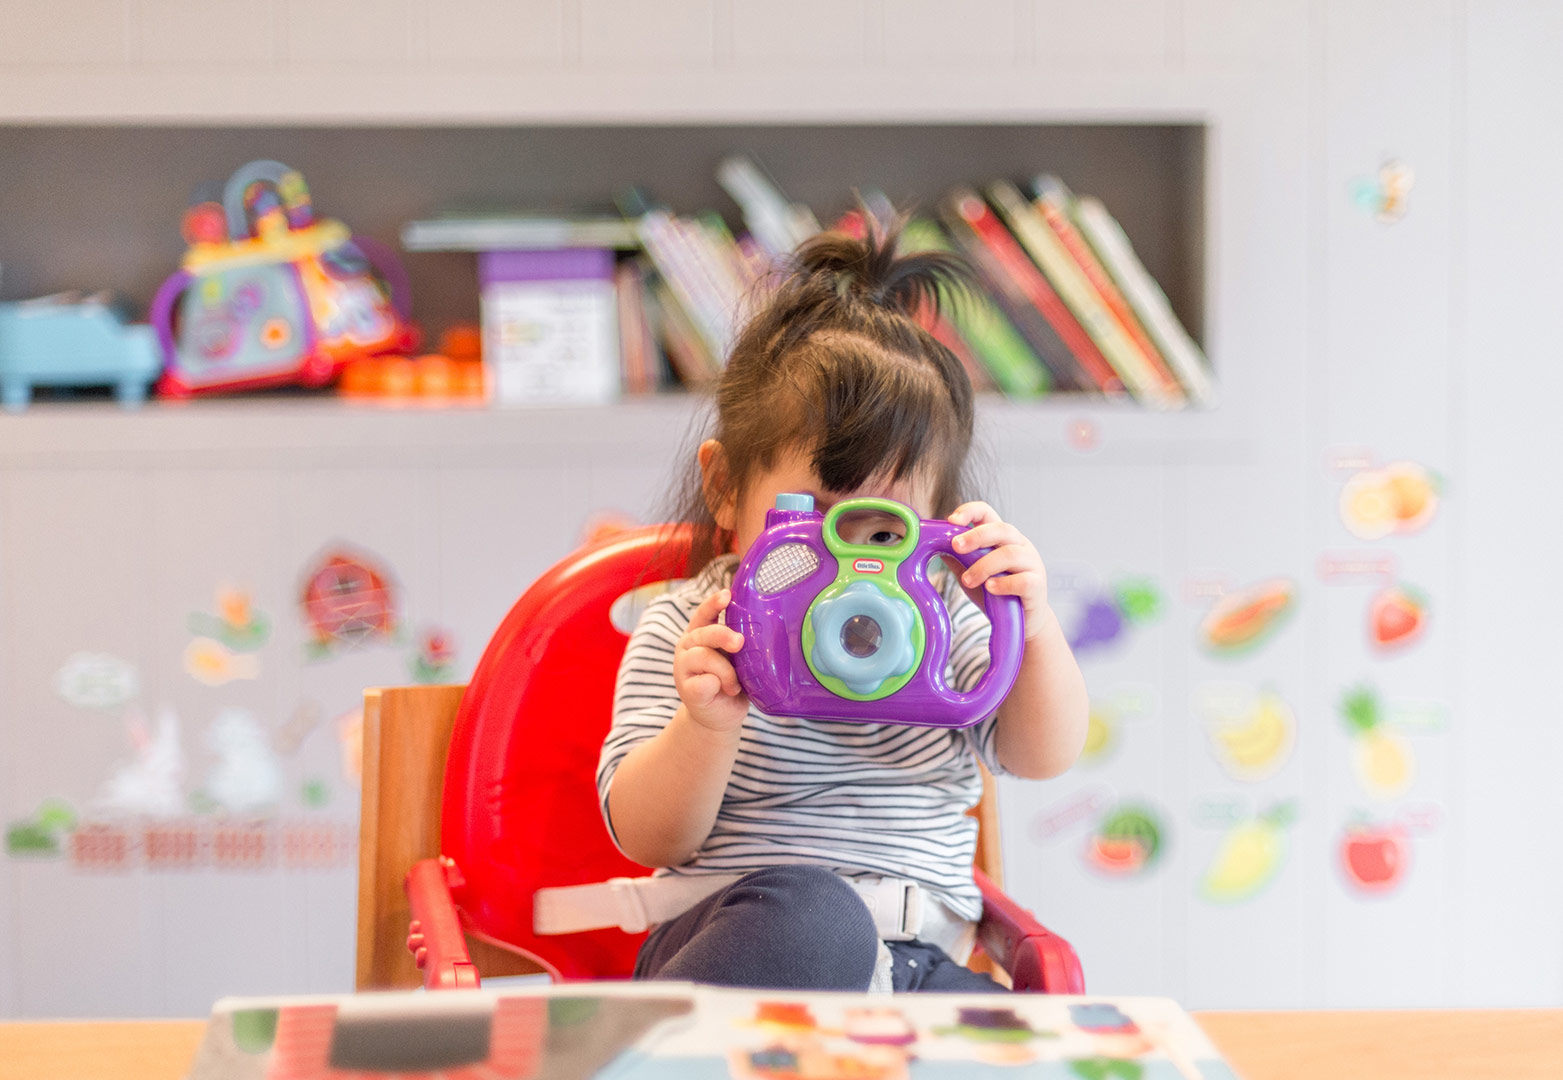 young brunette girl olding a plastic camera up to her face in playroom